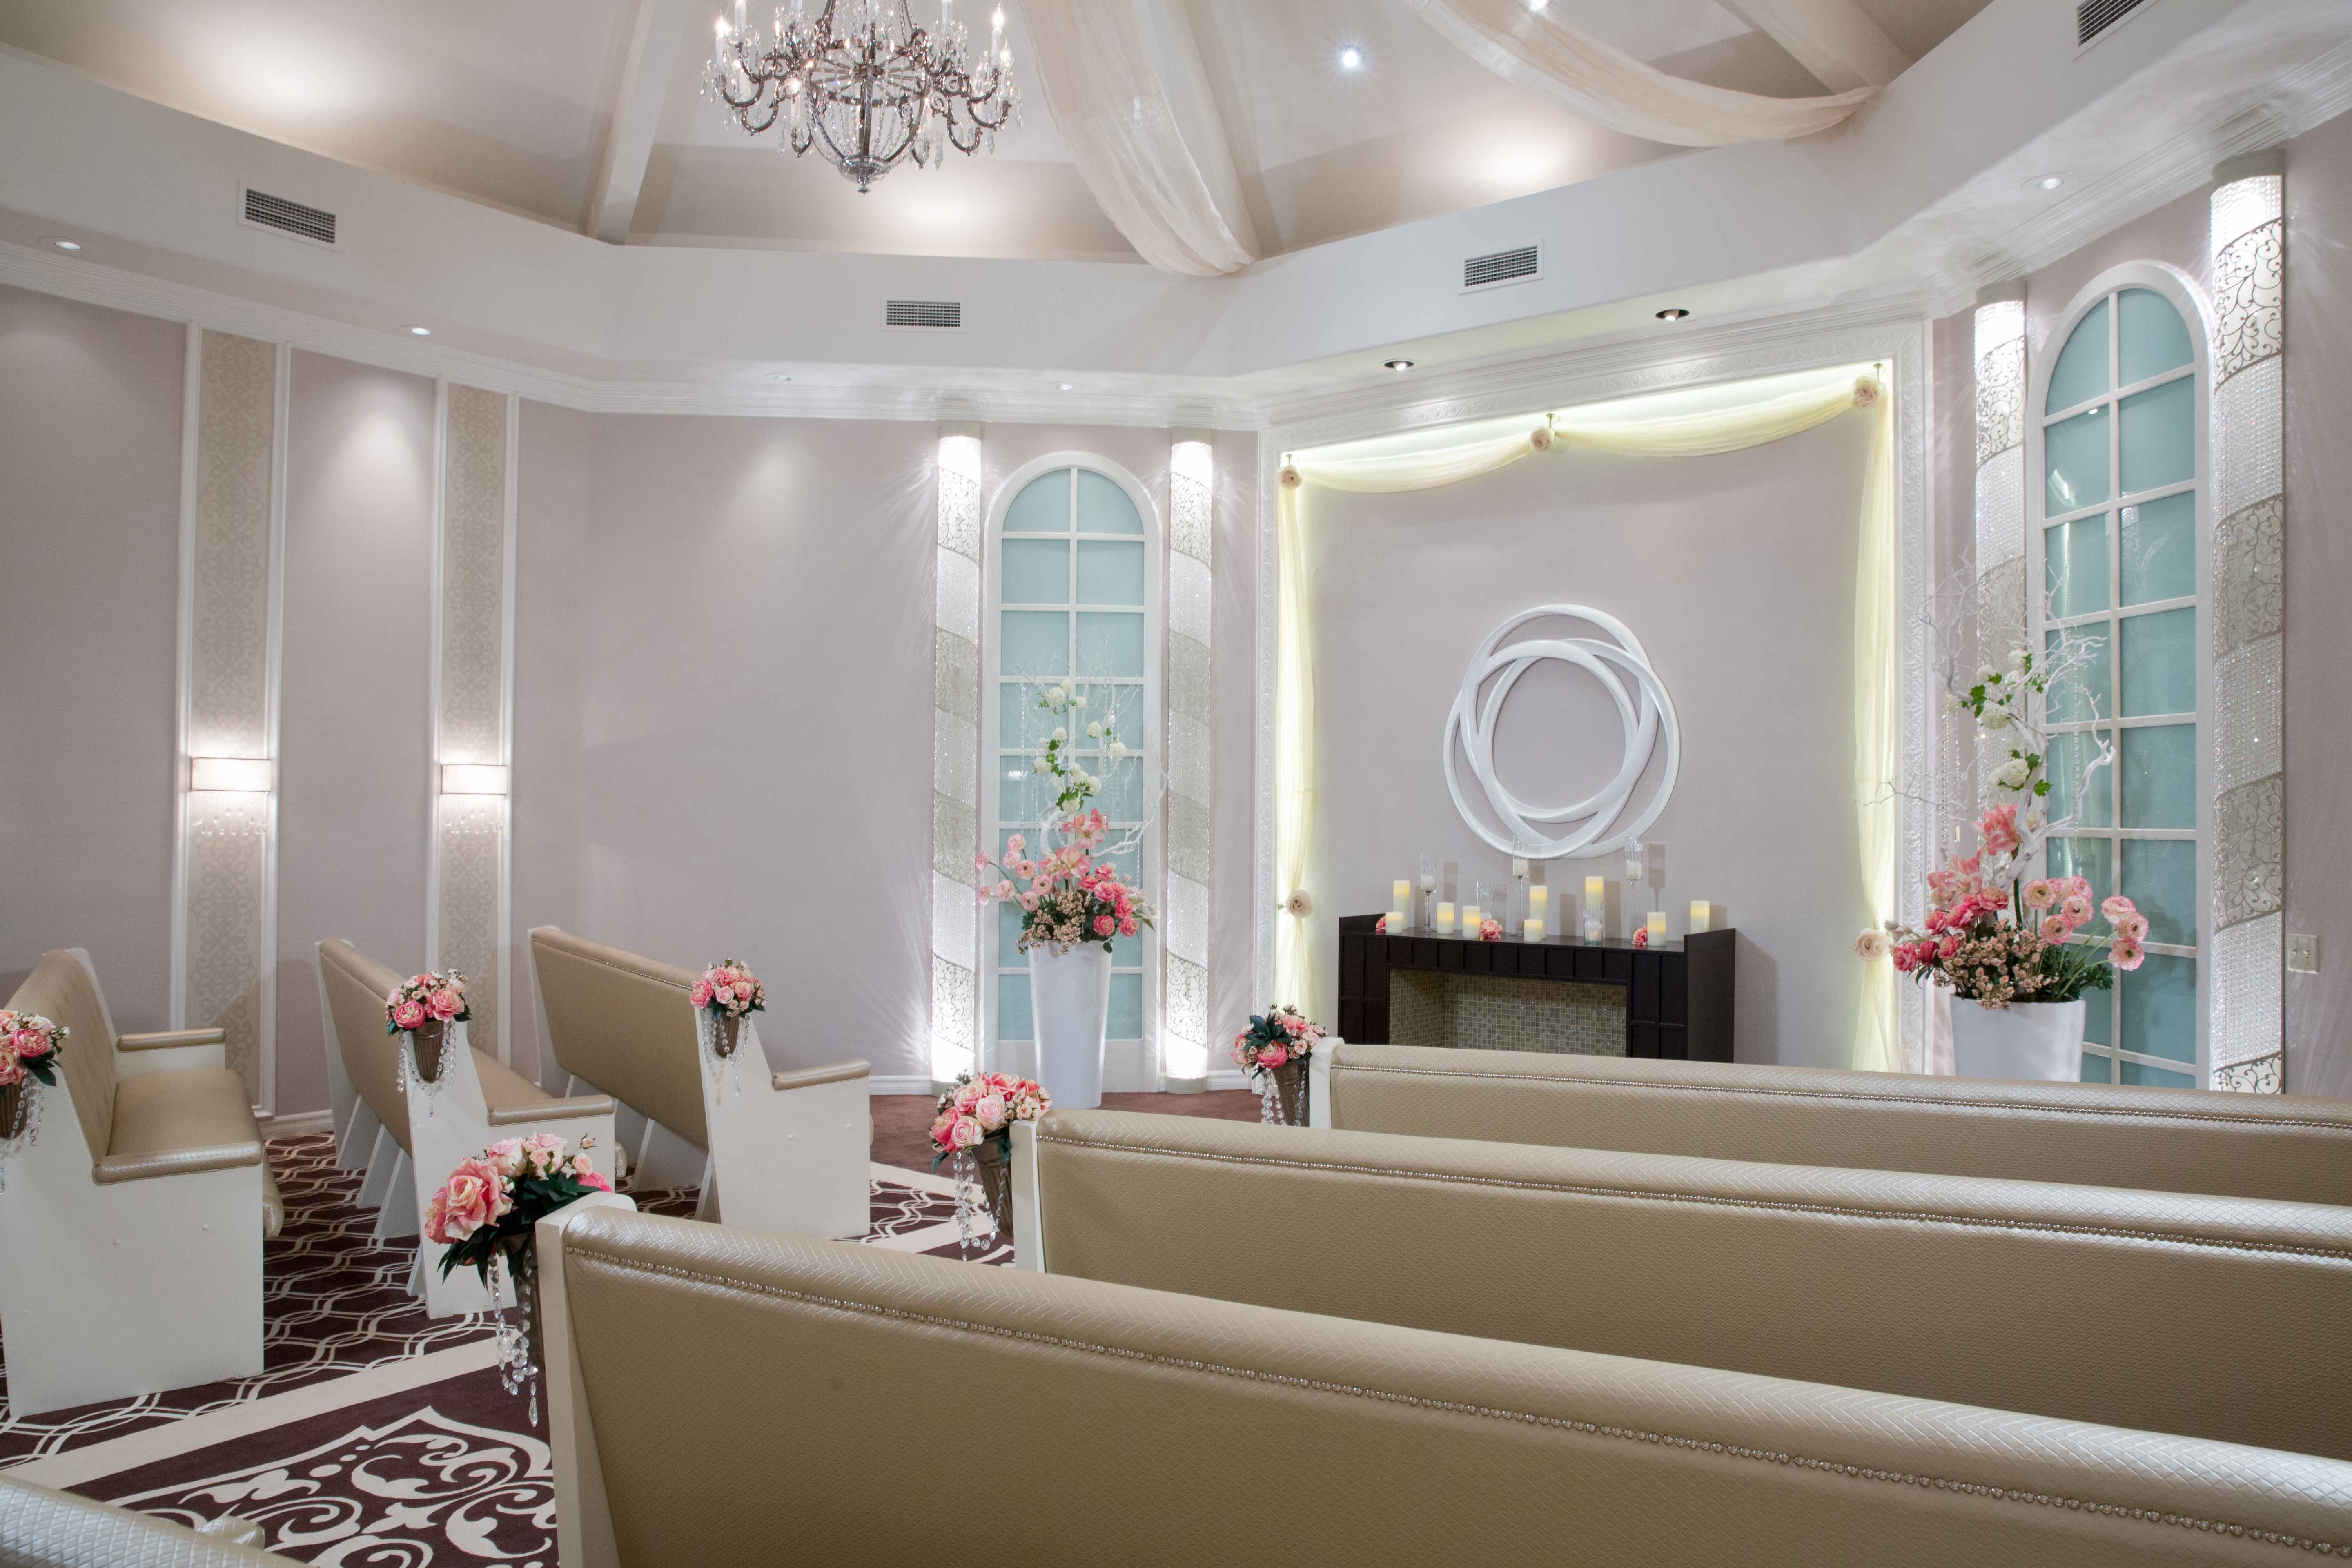 vegas wedding chapels wedding chapel las vegas Flamingo Garden Chapel